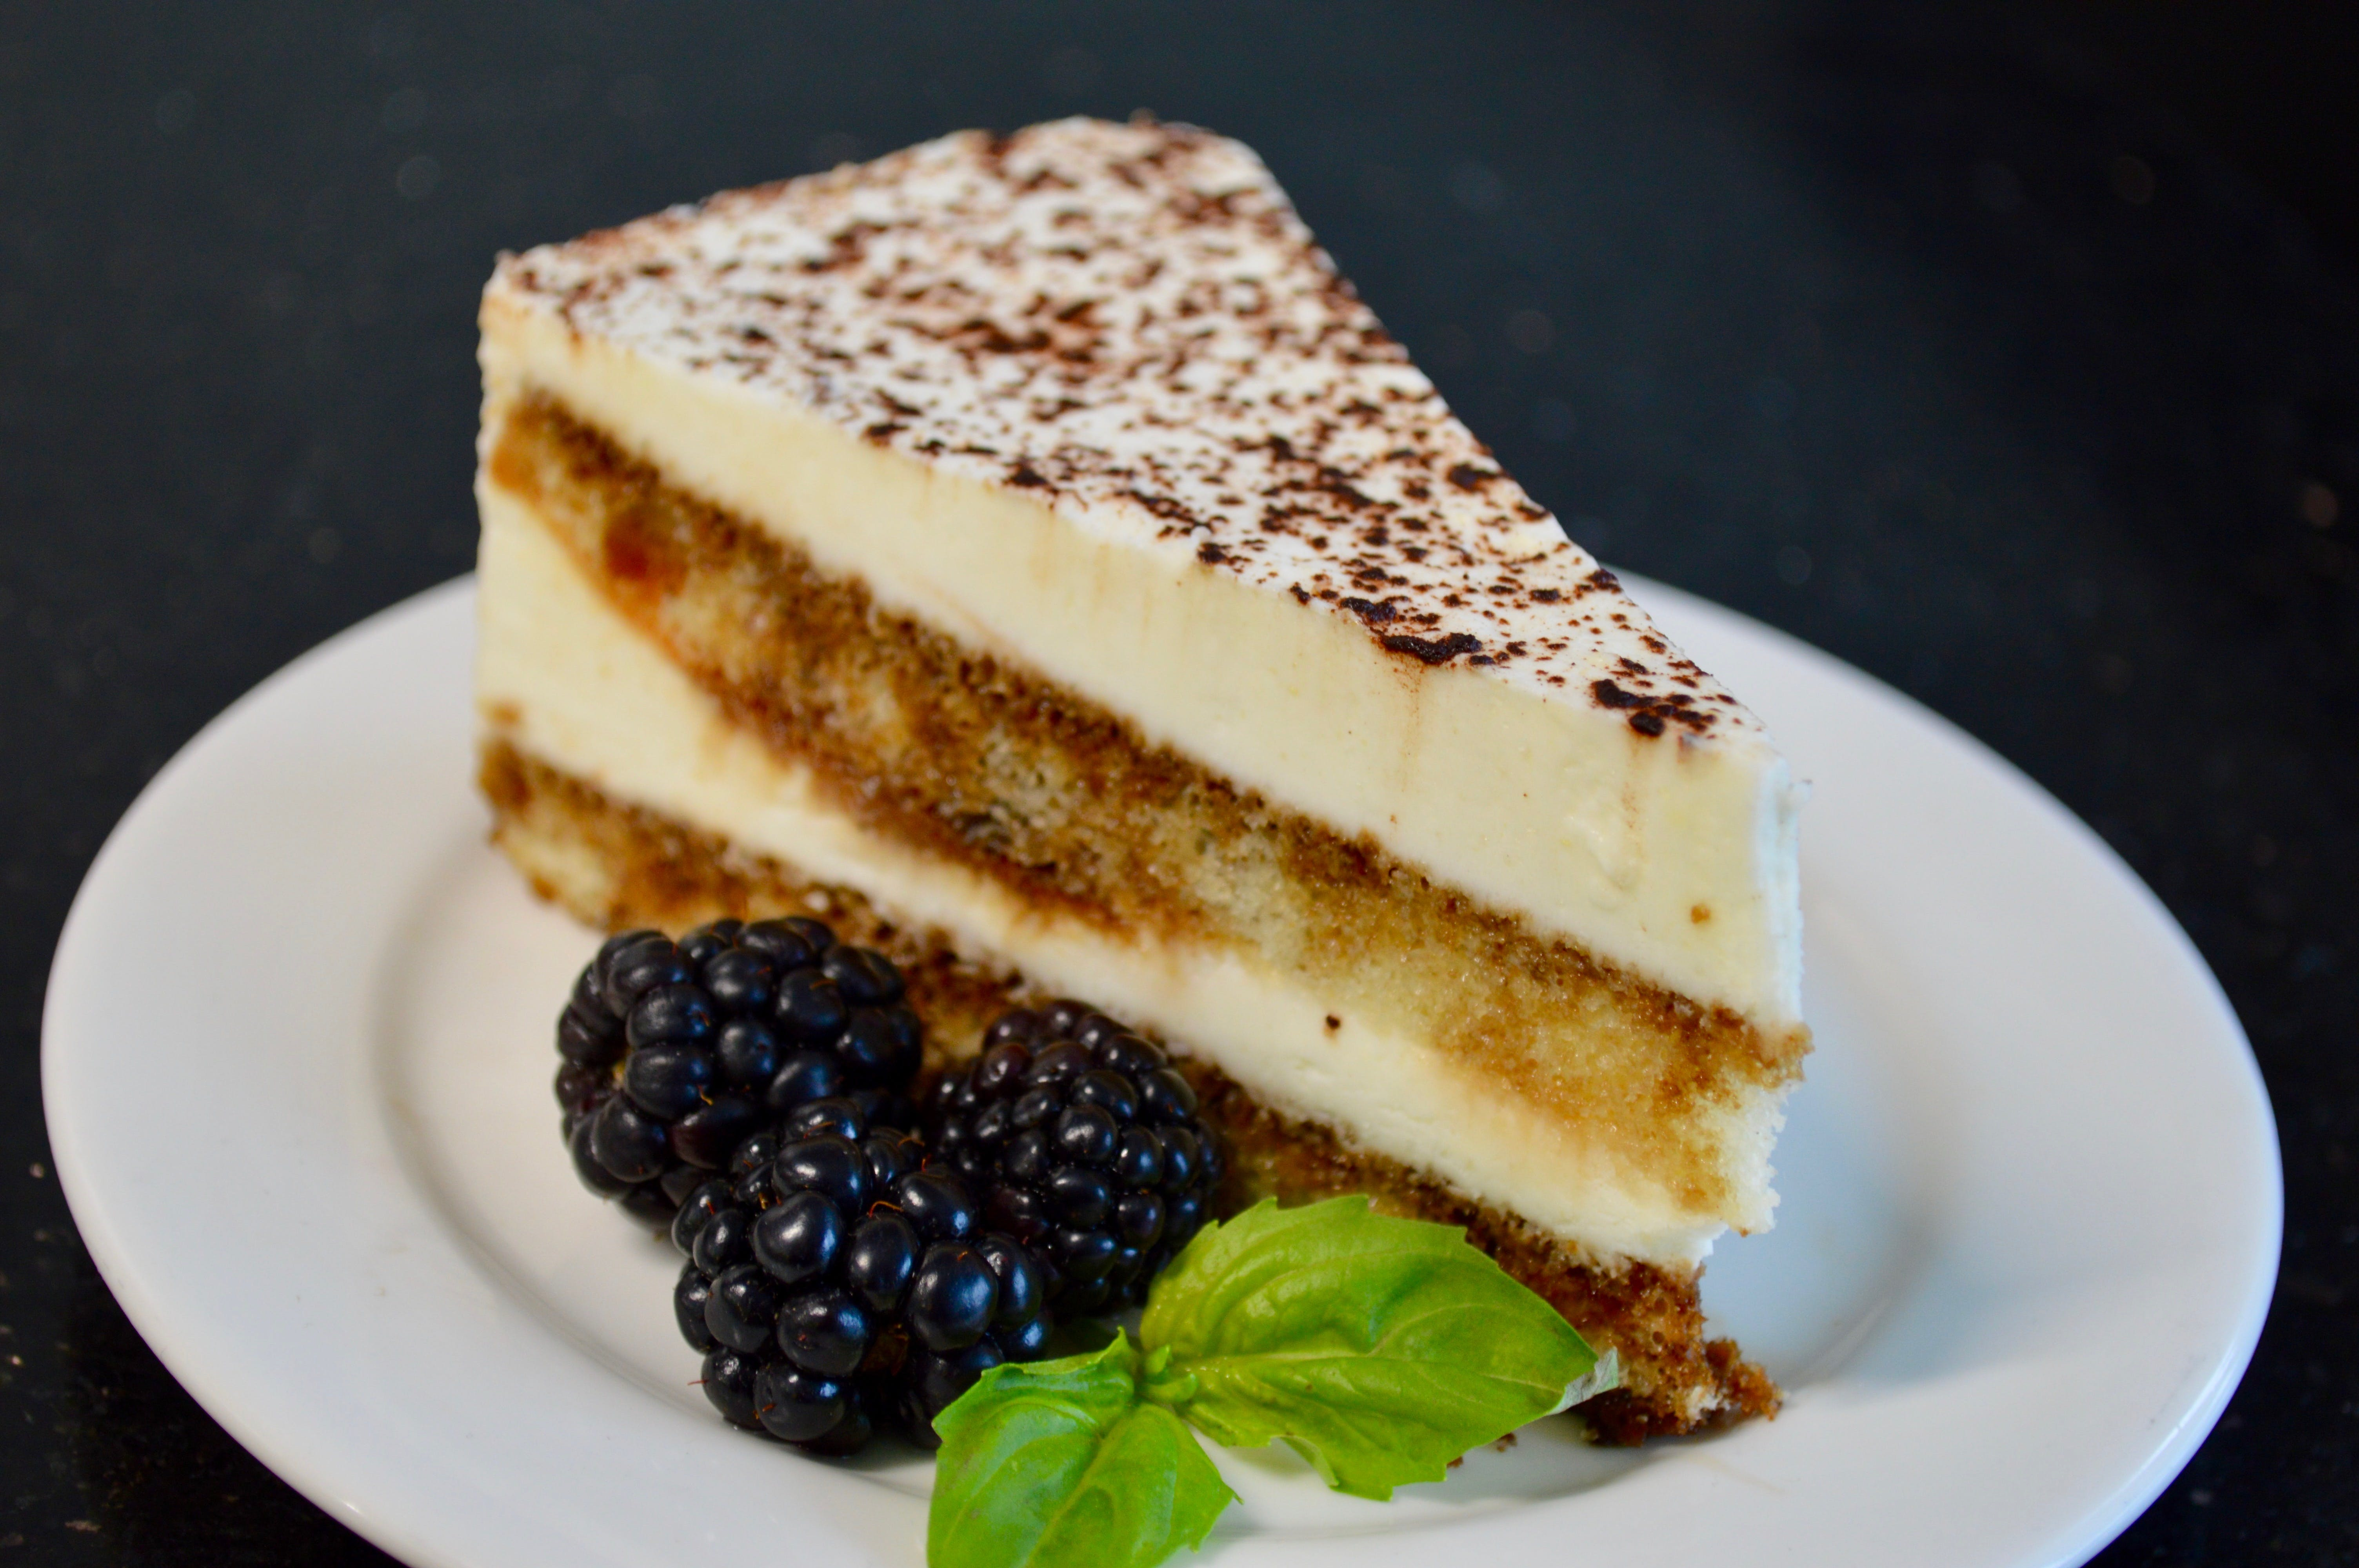 Tiramisu from Ameci Pizza & Pasta - Lake Forest in Lake Forest, CA